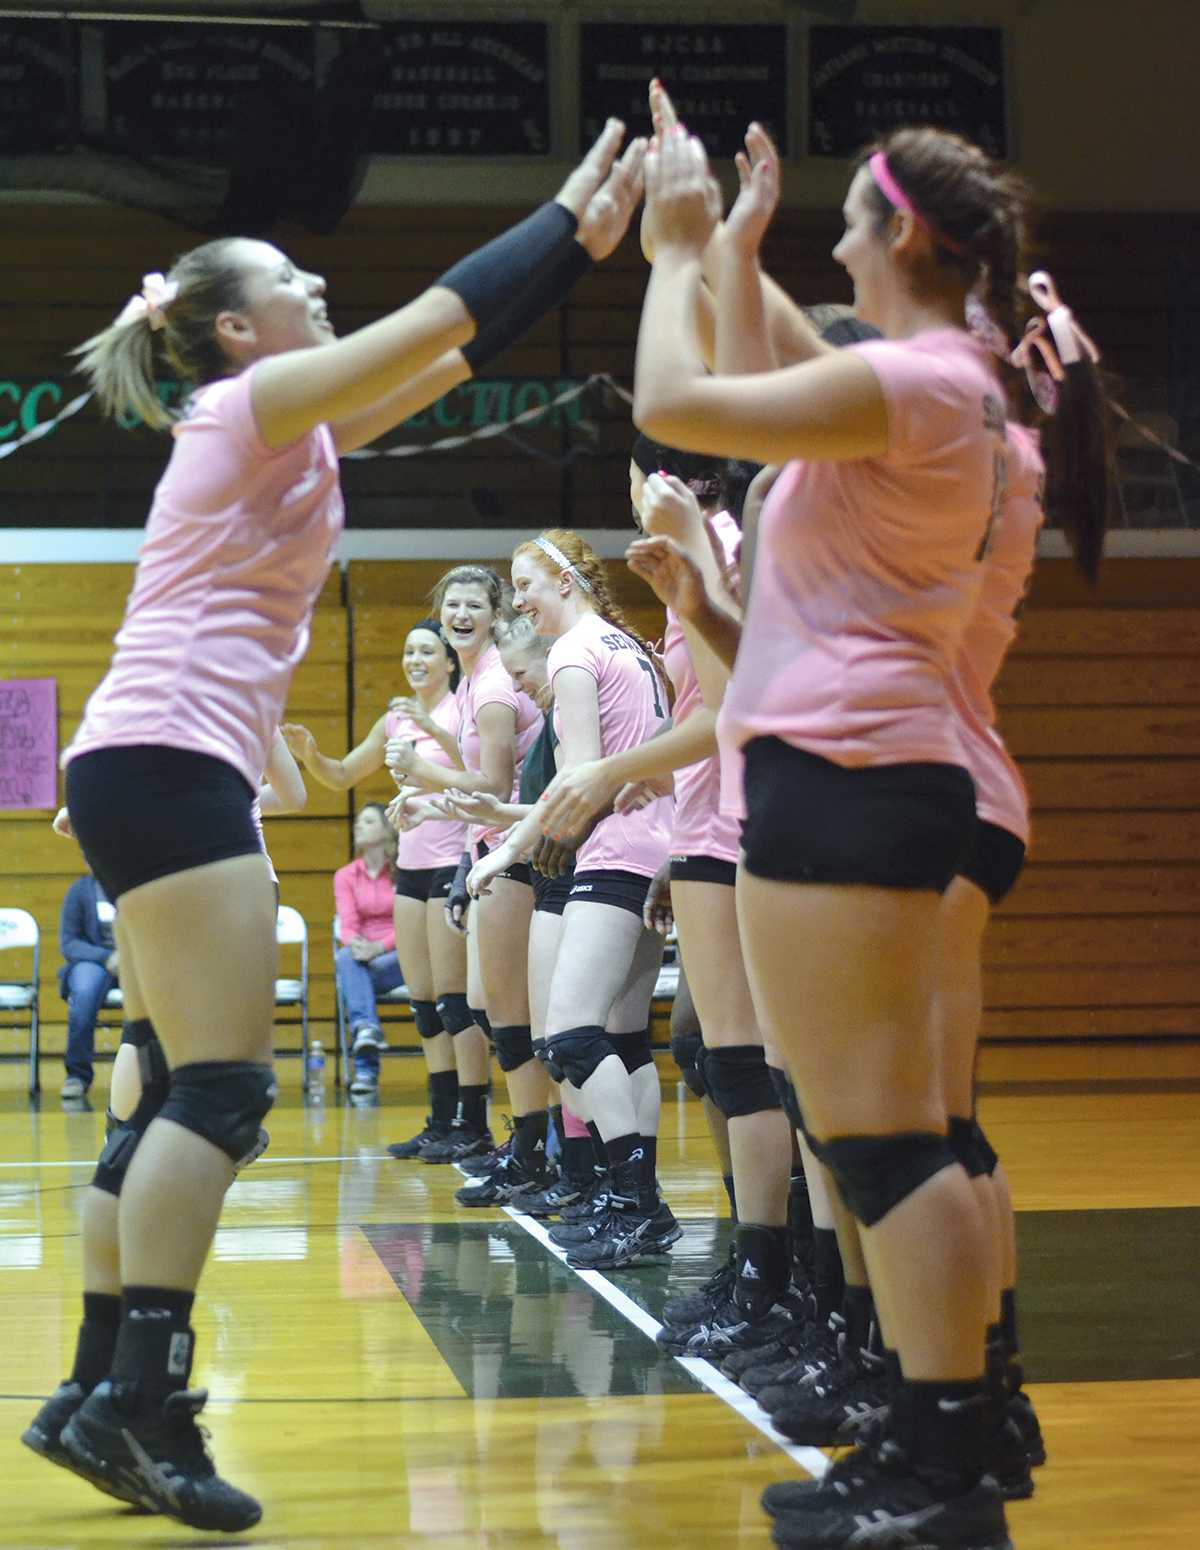 Crusader photo/ Diana Chavira  The Lady Saints make their line of introductions before they take the court. This was the Dig Pink for Breast Cancer match. The Lady Saints wore their pink uniforms to show their support of breast cancer awareness. In between sets 2 and 3, Seward collected donations that went towards the Dig Pink Side Out Foundation.